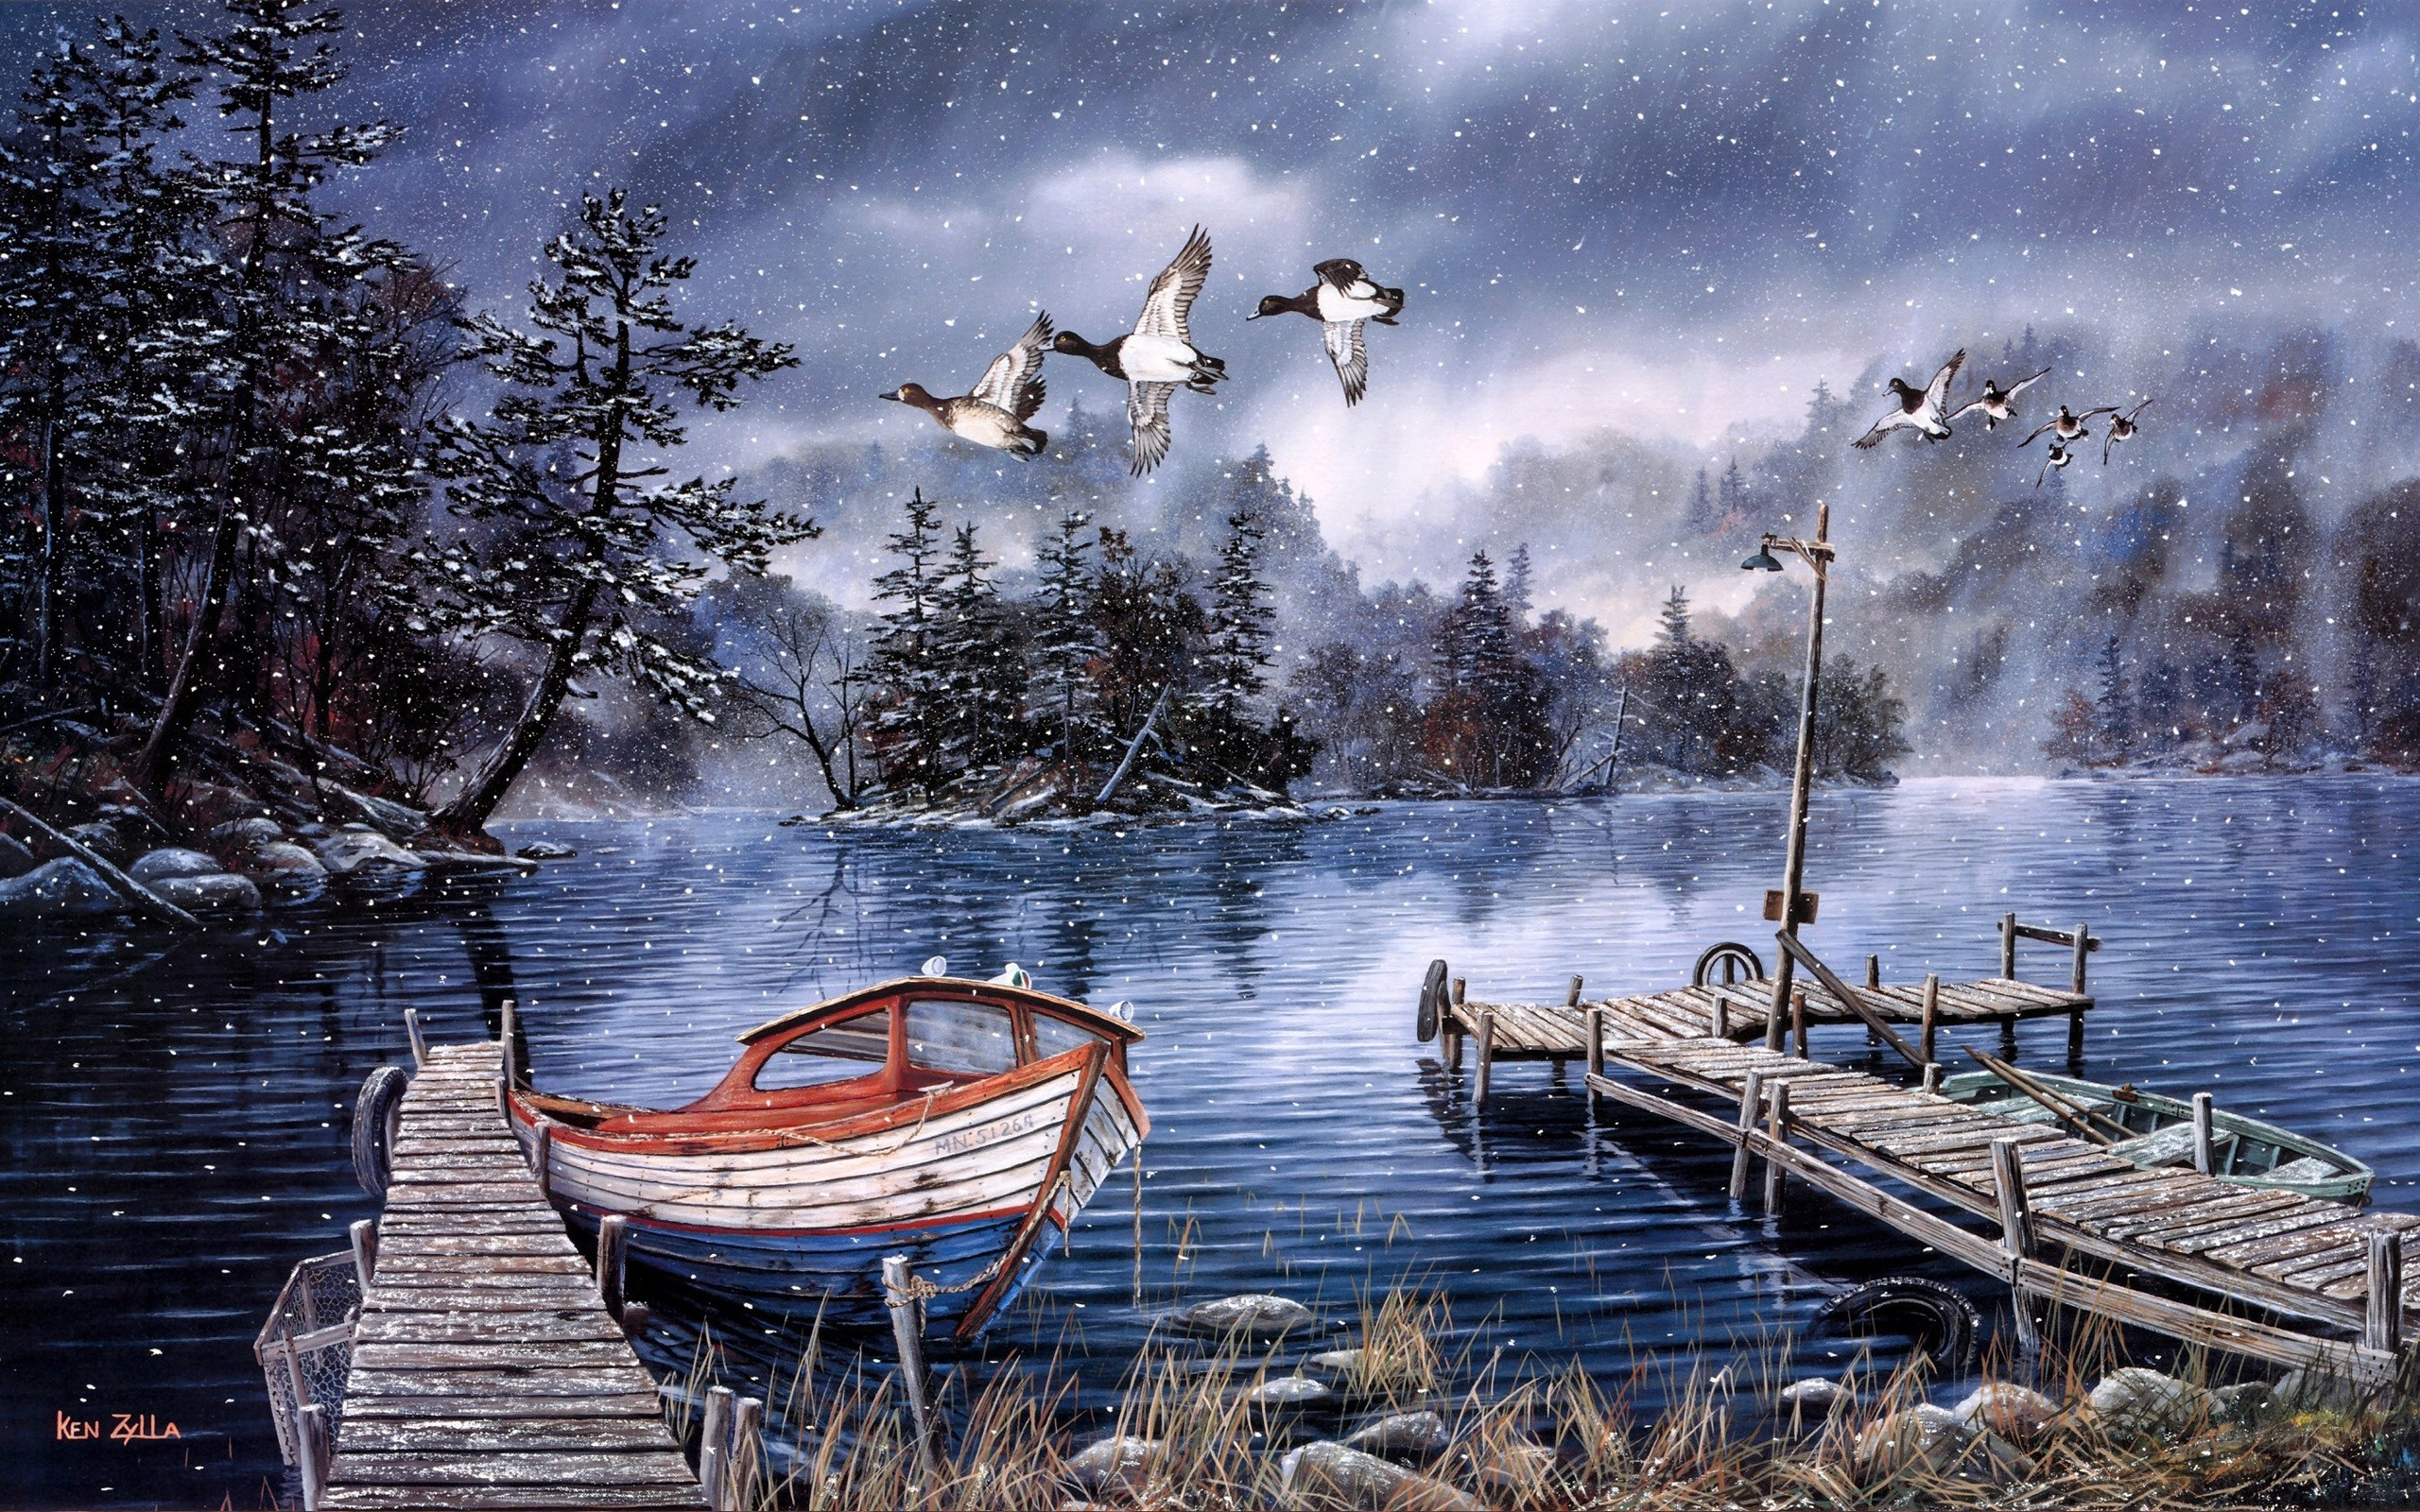 Res: 2560x1600, Watercolor painting, lake and woods, snow winter, dock, ducks, boat  wallpaper